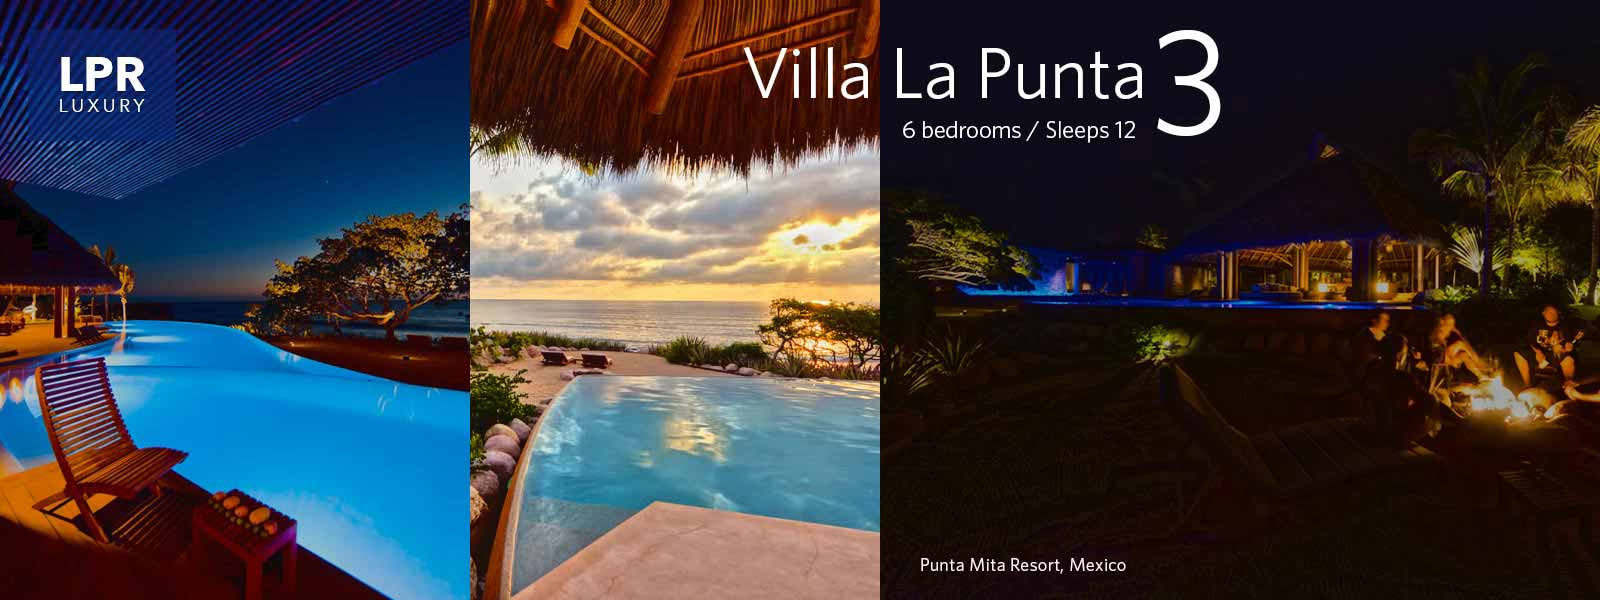 Villa La Punta 3 - Luxury Punta Mita Rentals and Real Estate - Vallarta | Nayarit, Mexico